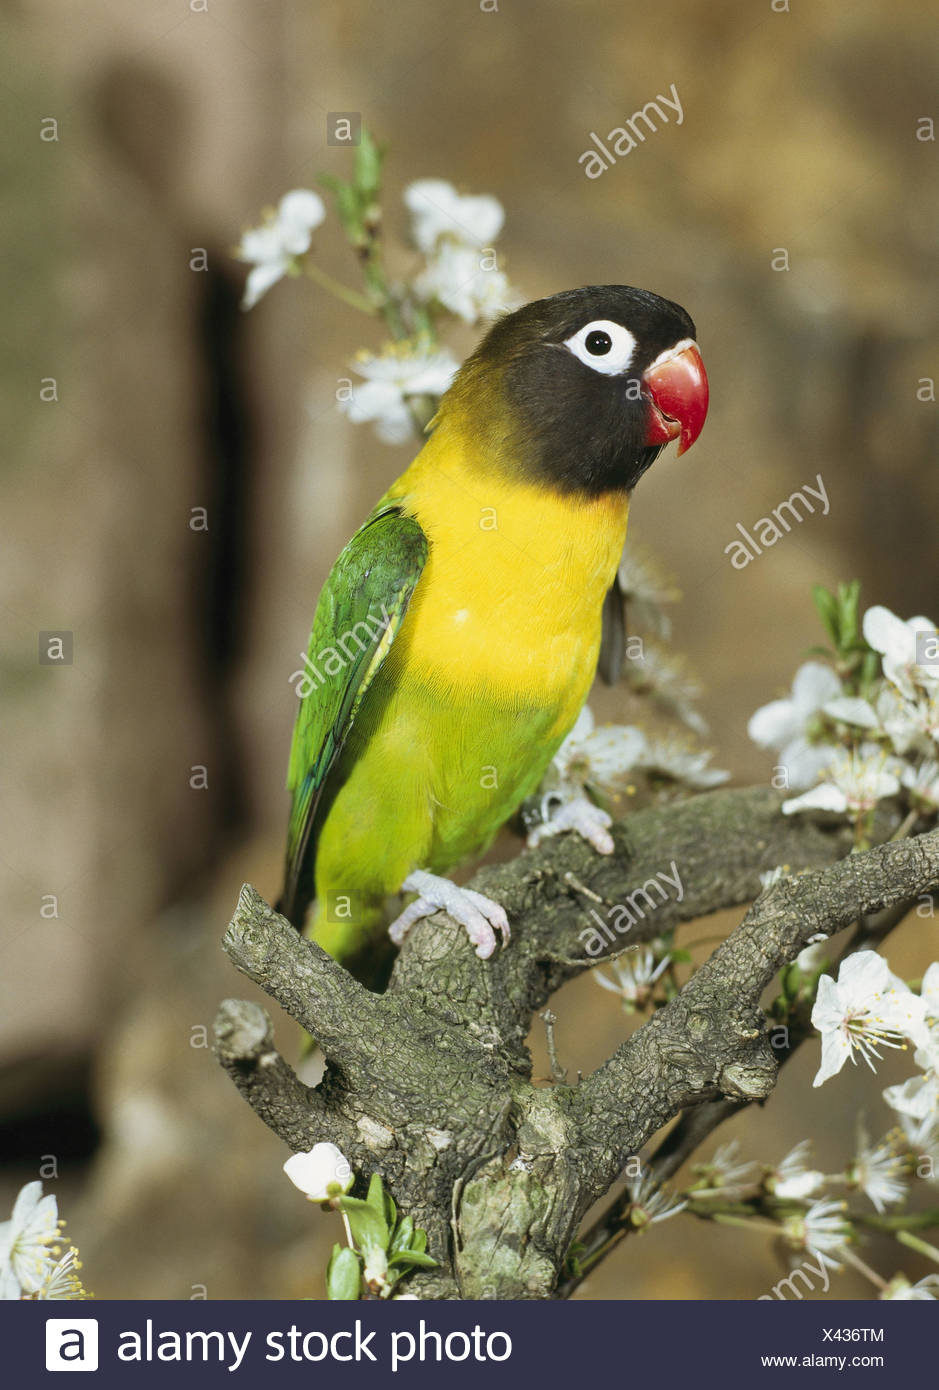 Branch Schwarzkopfchen Agapornis Personata Vigilance Wildlife Animal Bird Parrot Bird Inseparable Mask Inseparable Plumages Colorfully Colored